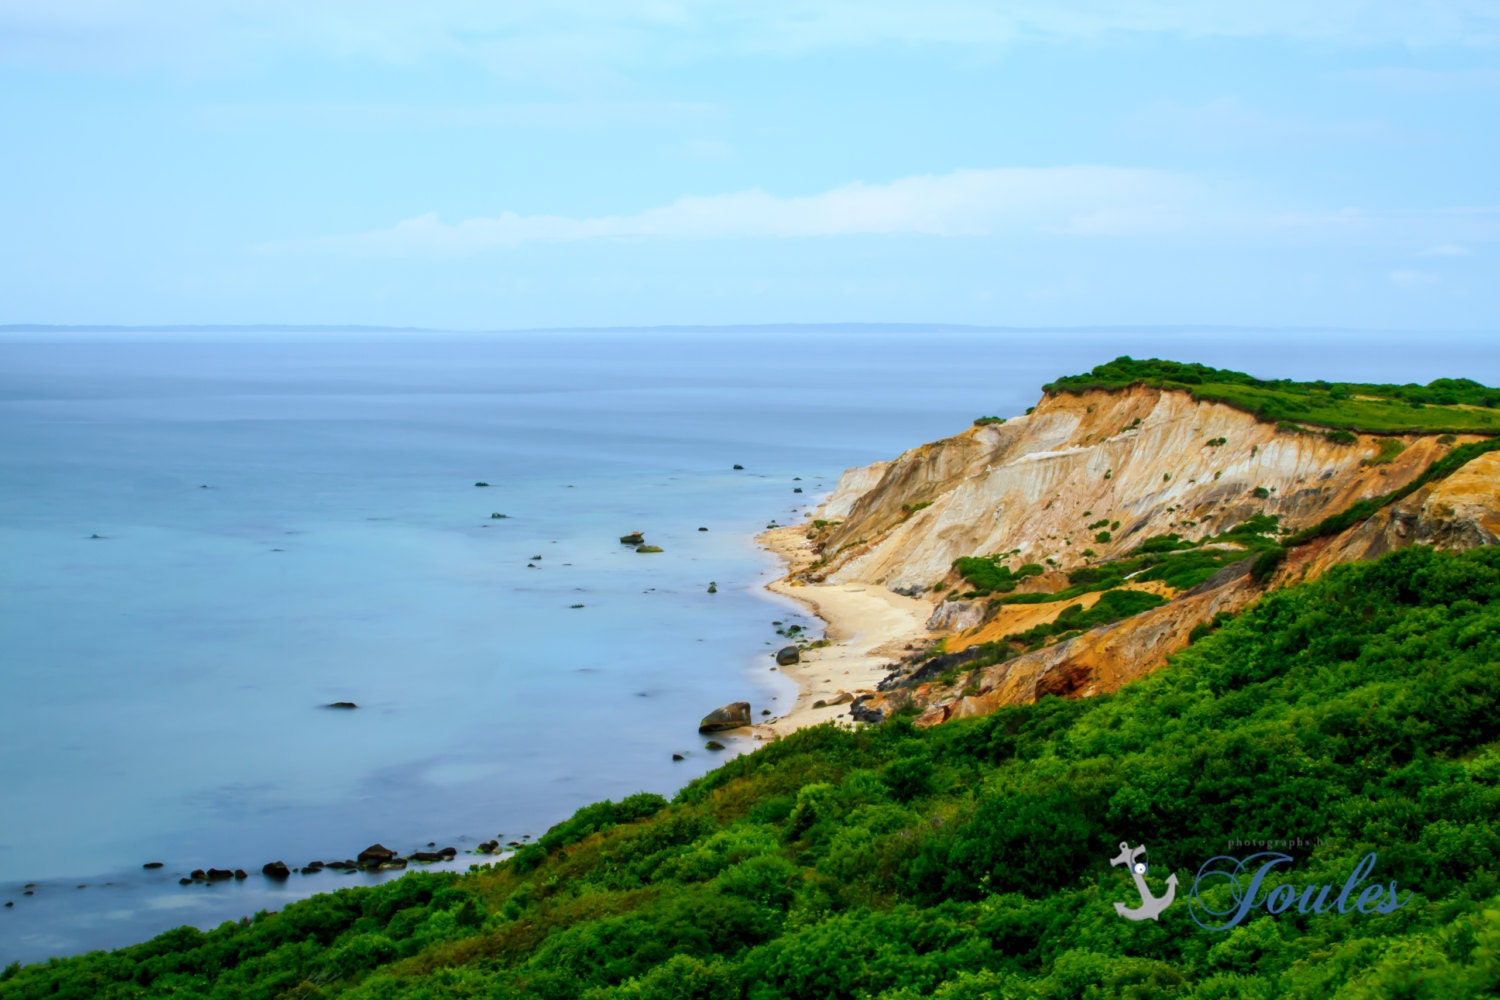 File:Gay Head clay cliffs of town of Aquinnah with seaweed